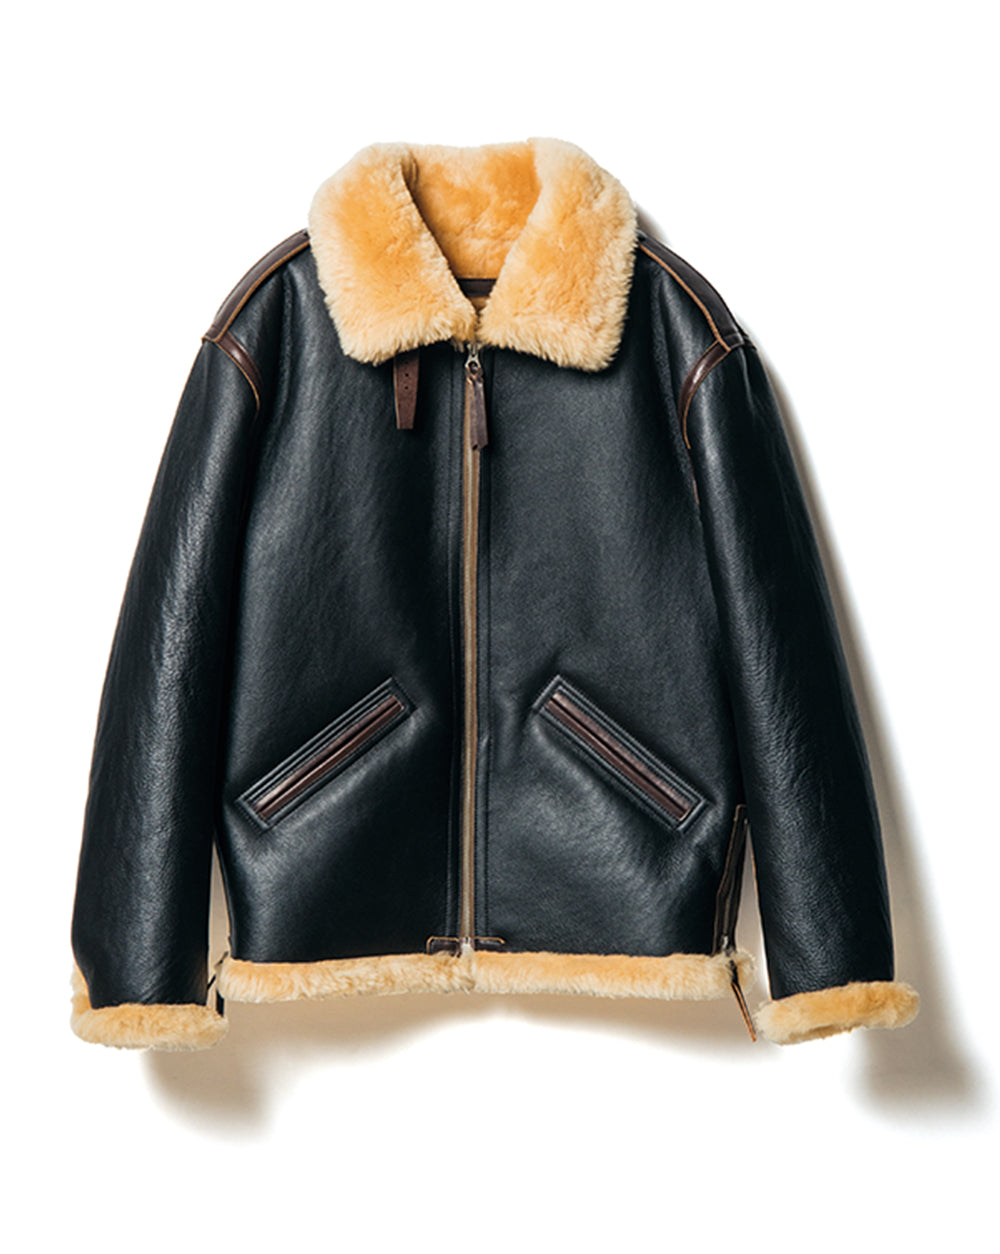 Colomer Mouton in Black x Brown (Type B-6) Jacket